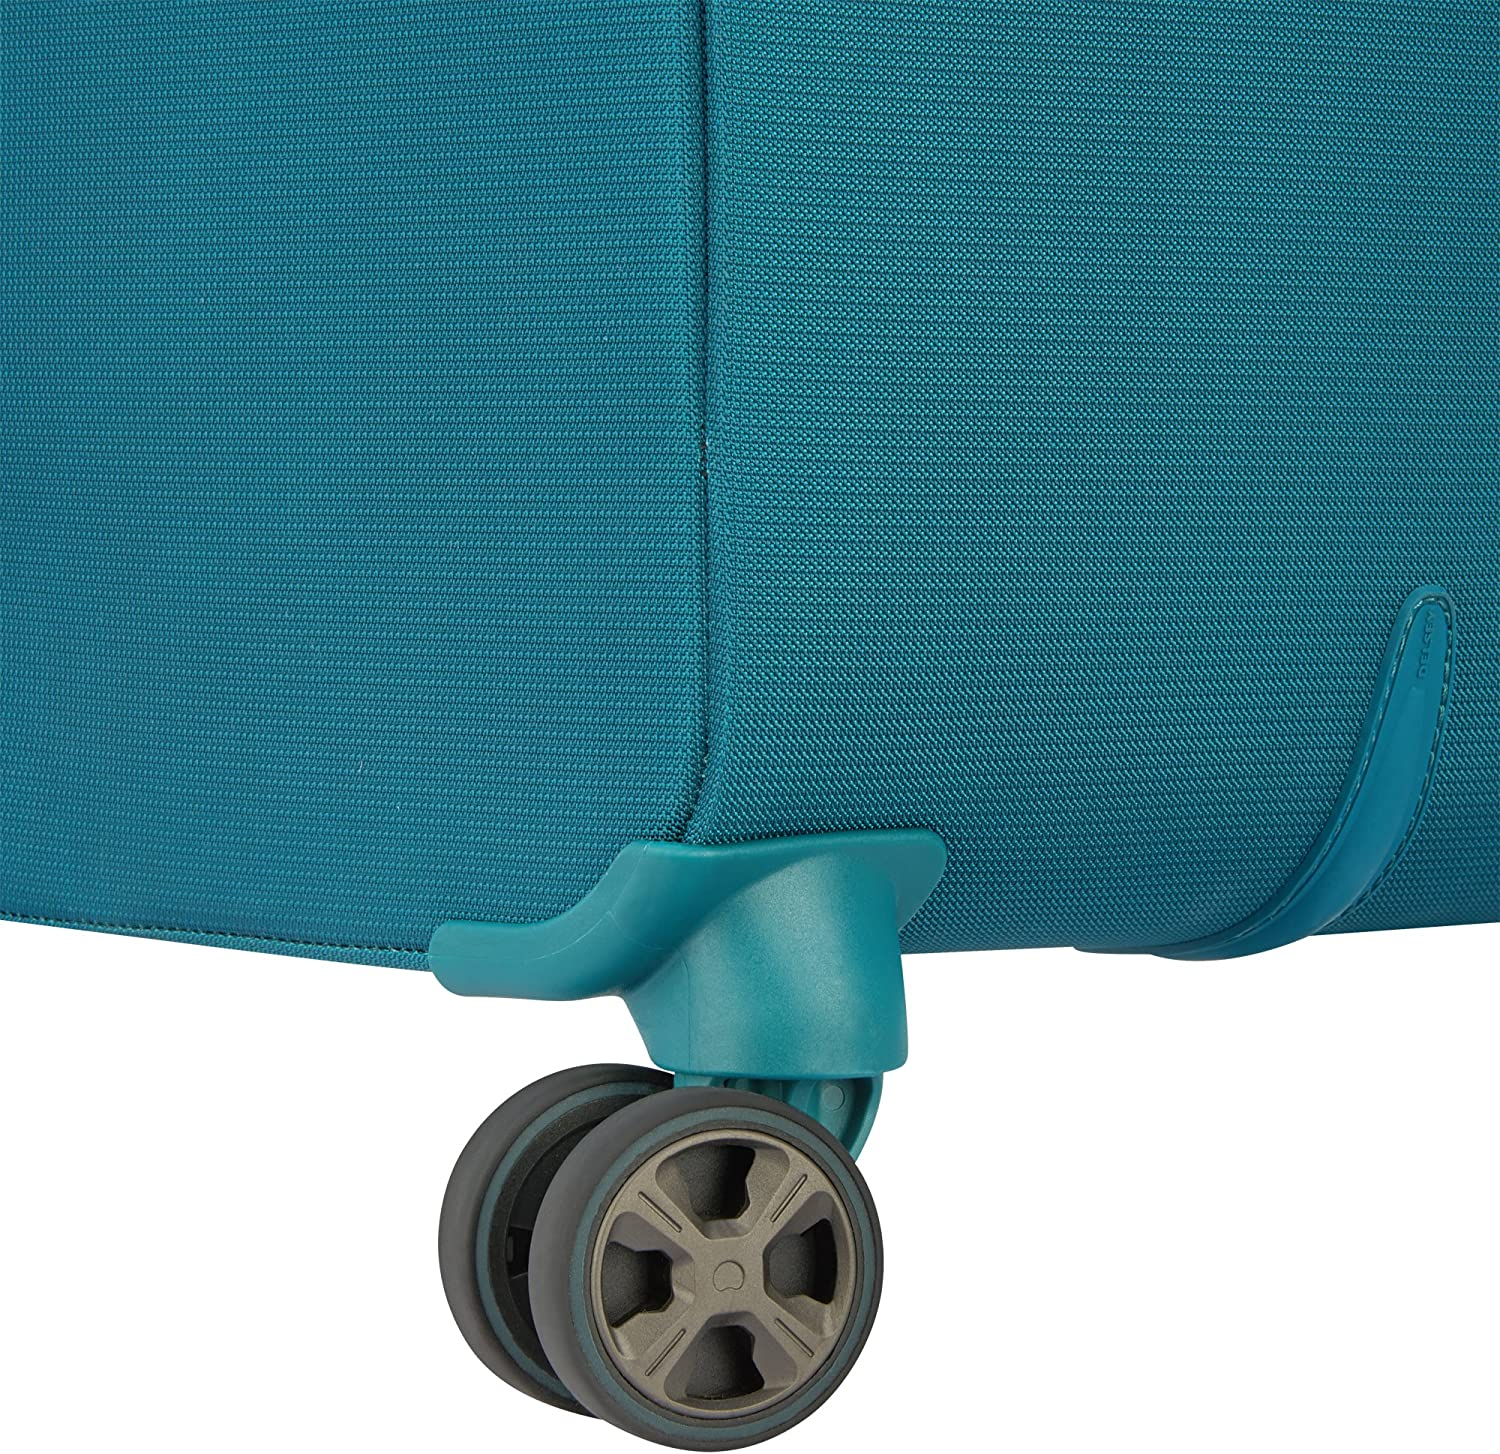 DELSEY Paris Hyperglide Softside Expandable Luggage with Spinner Wheels